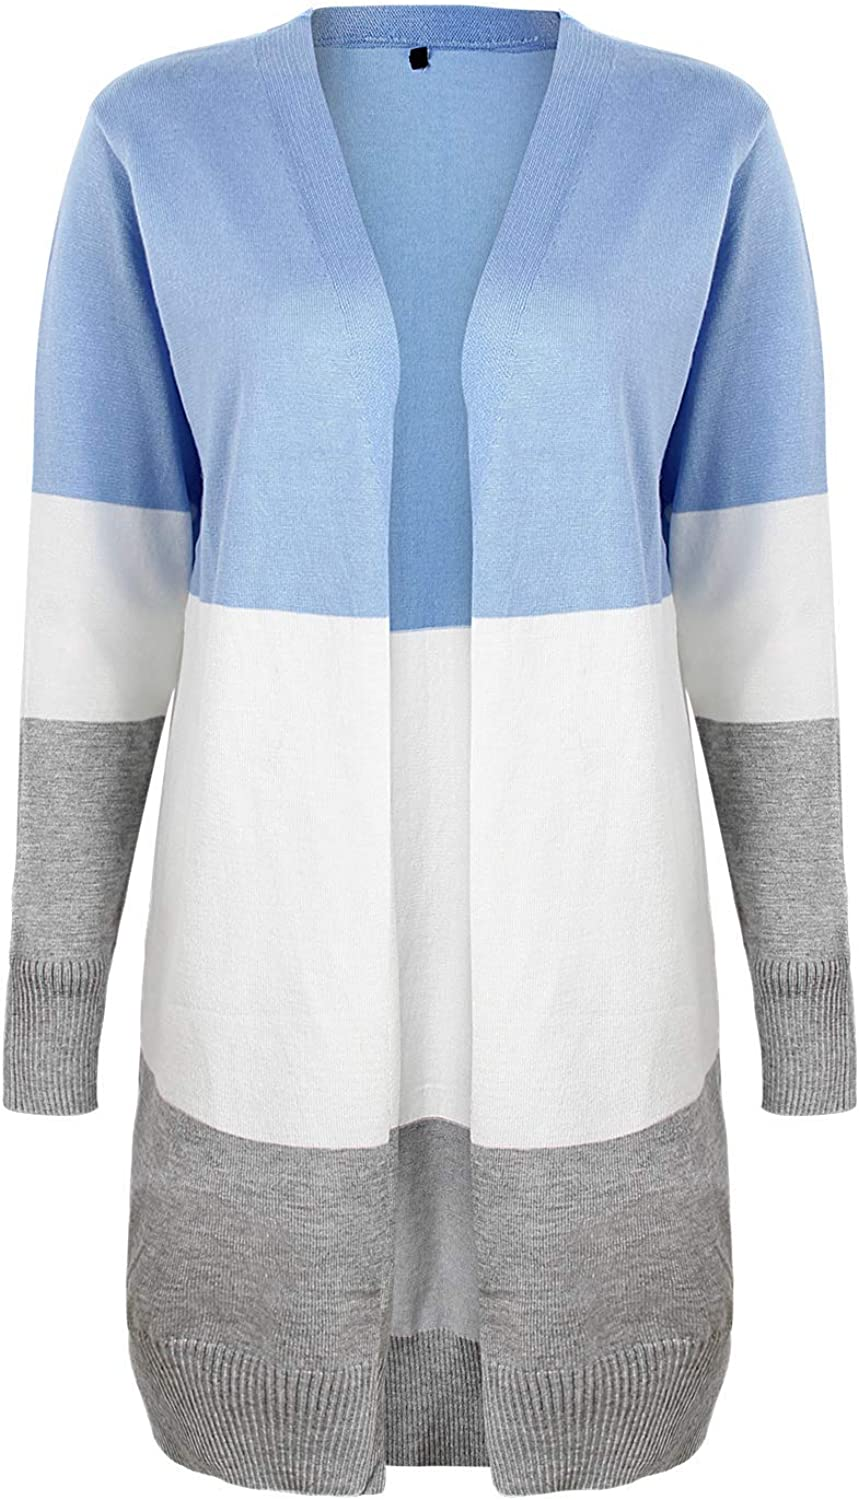 INIBUD Cardigan Sweaters for Women Open Front Long Sleeve Sweater Tops with Pockets